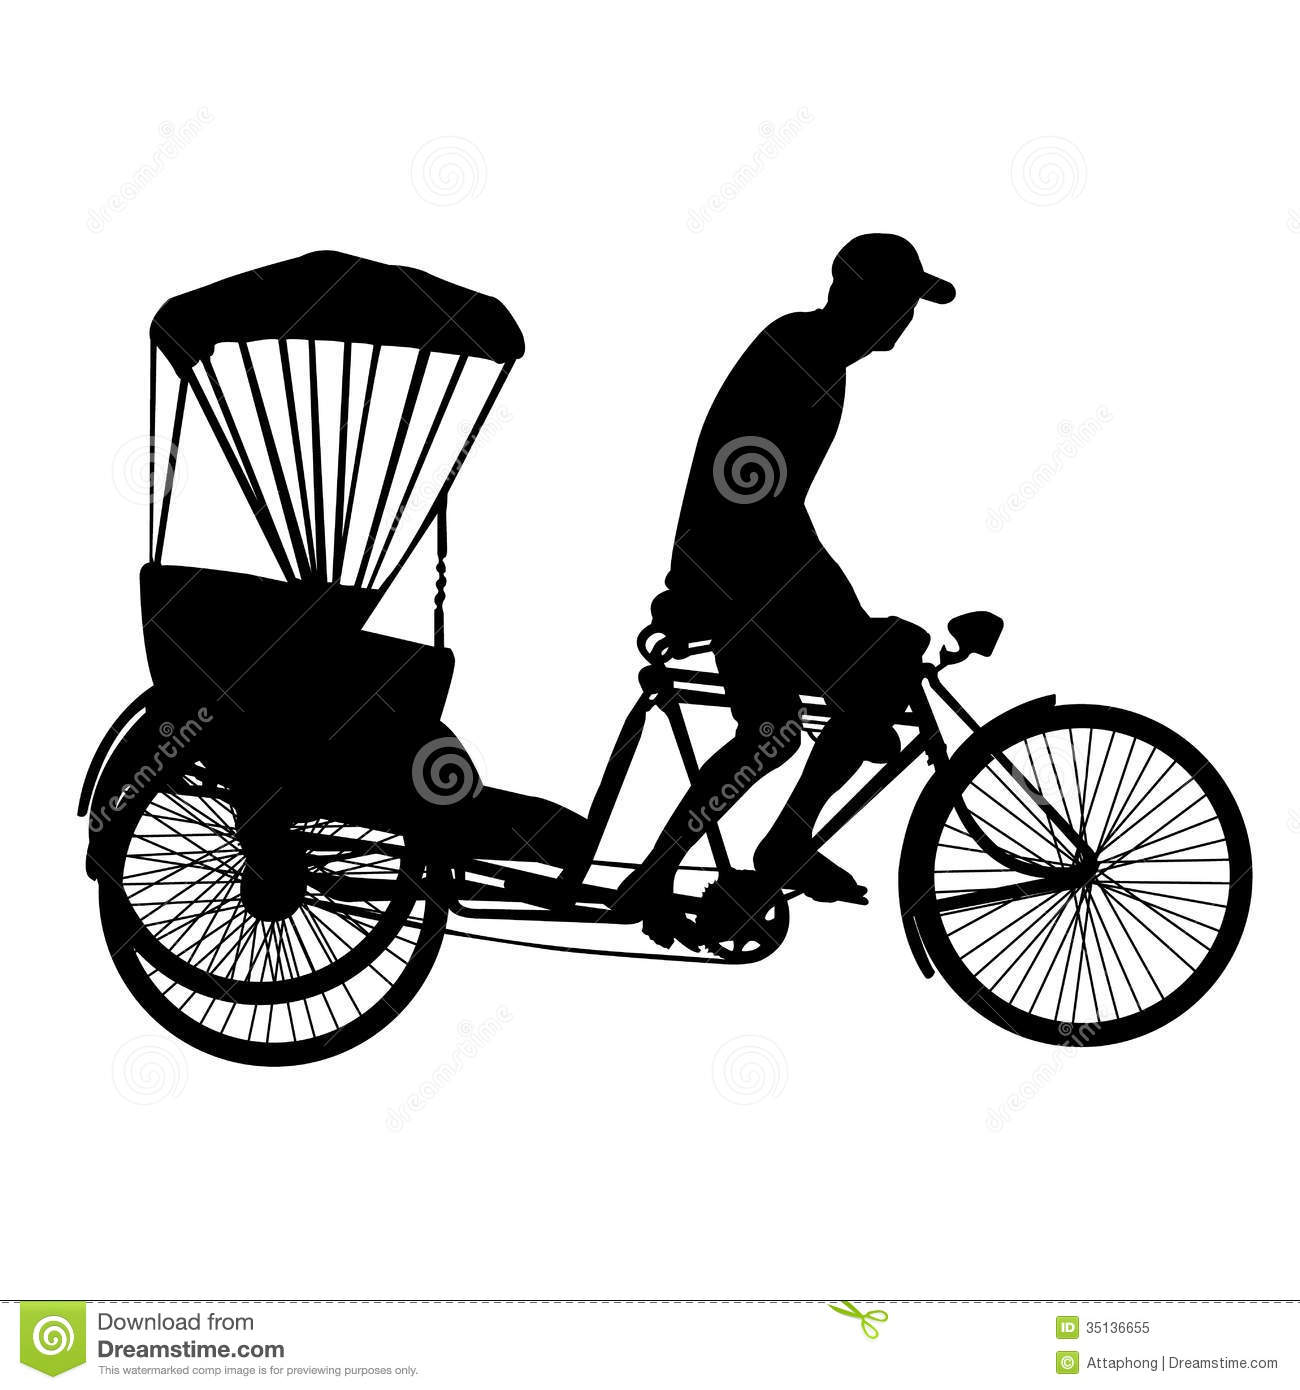 Cycle rickshaw clipart png download Cycle rickshaw clipart - ClipartFest png download